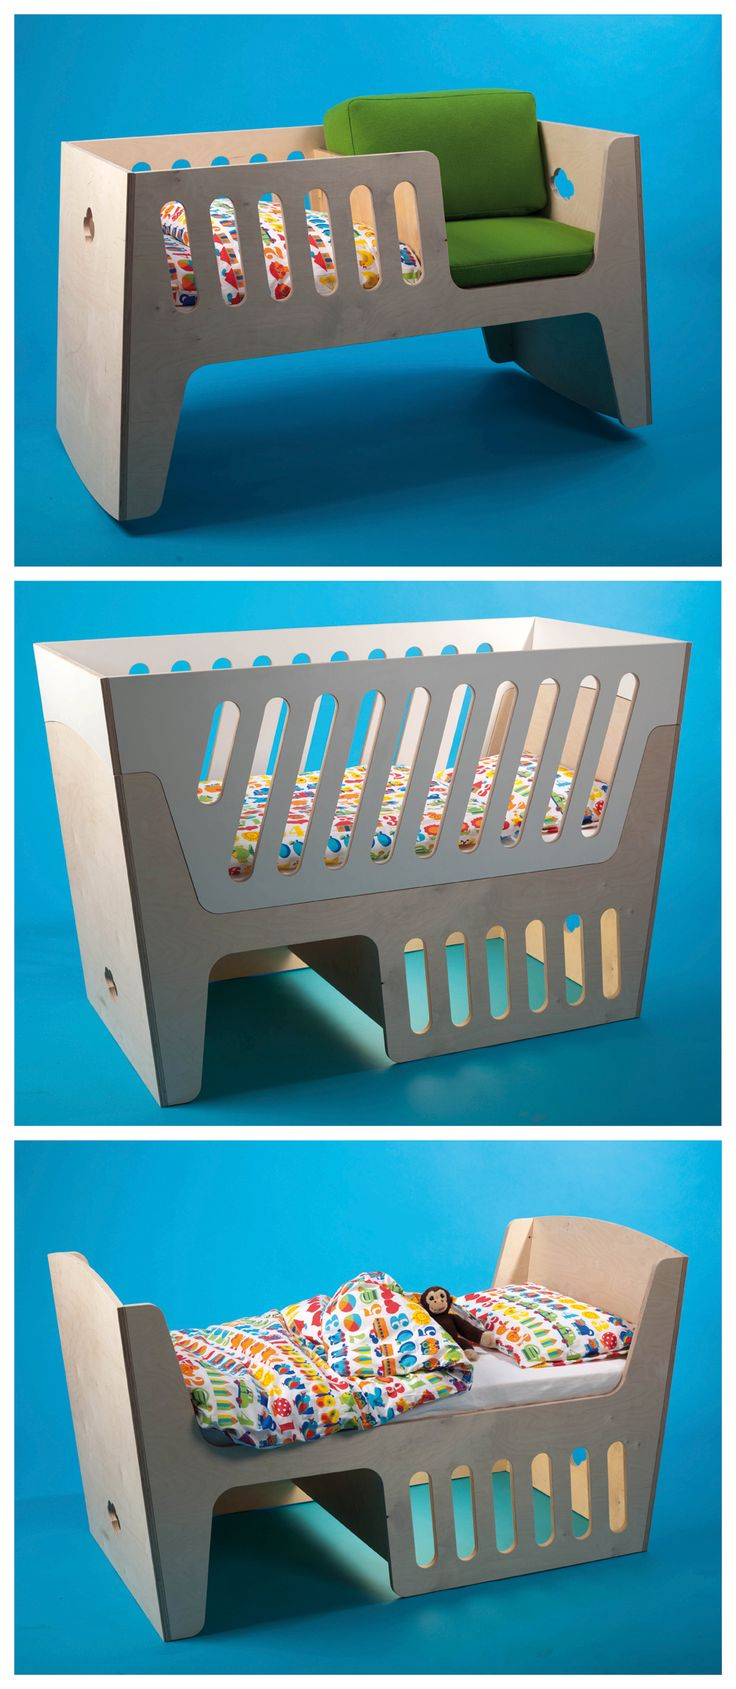 Awesome Cot that can be adapted into a seat as the child grows...